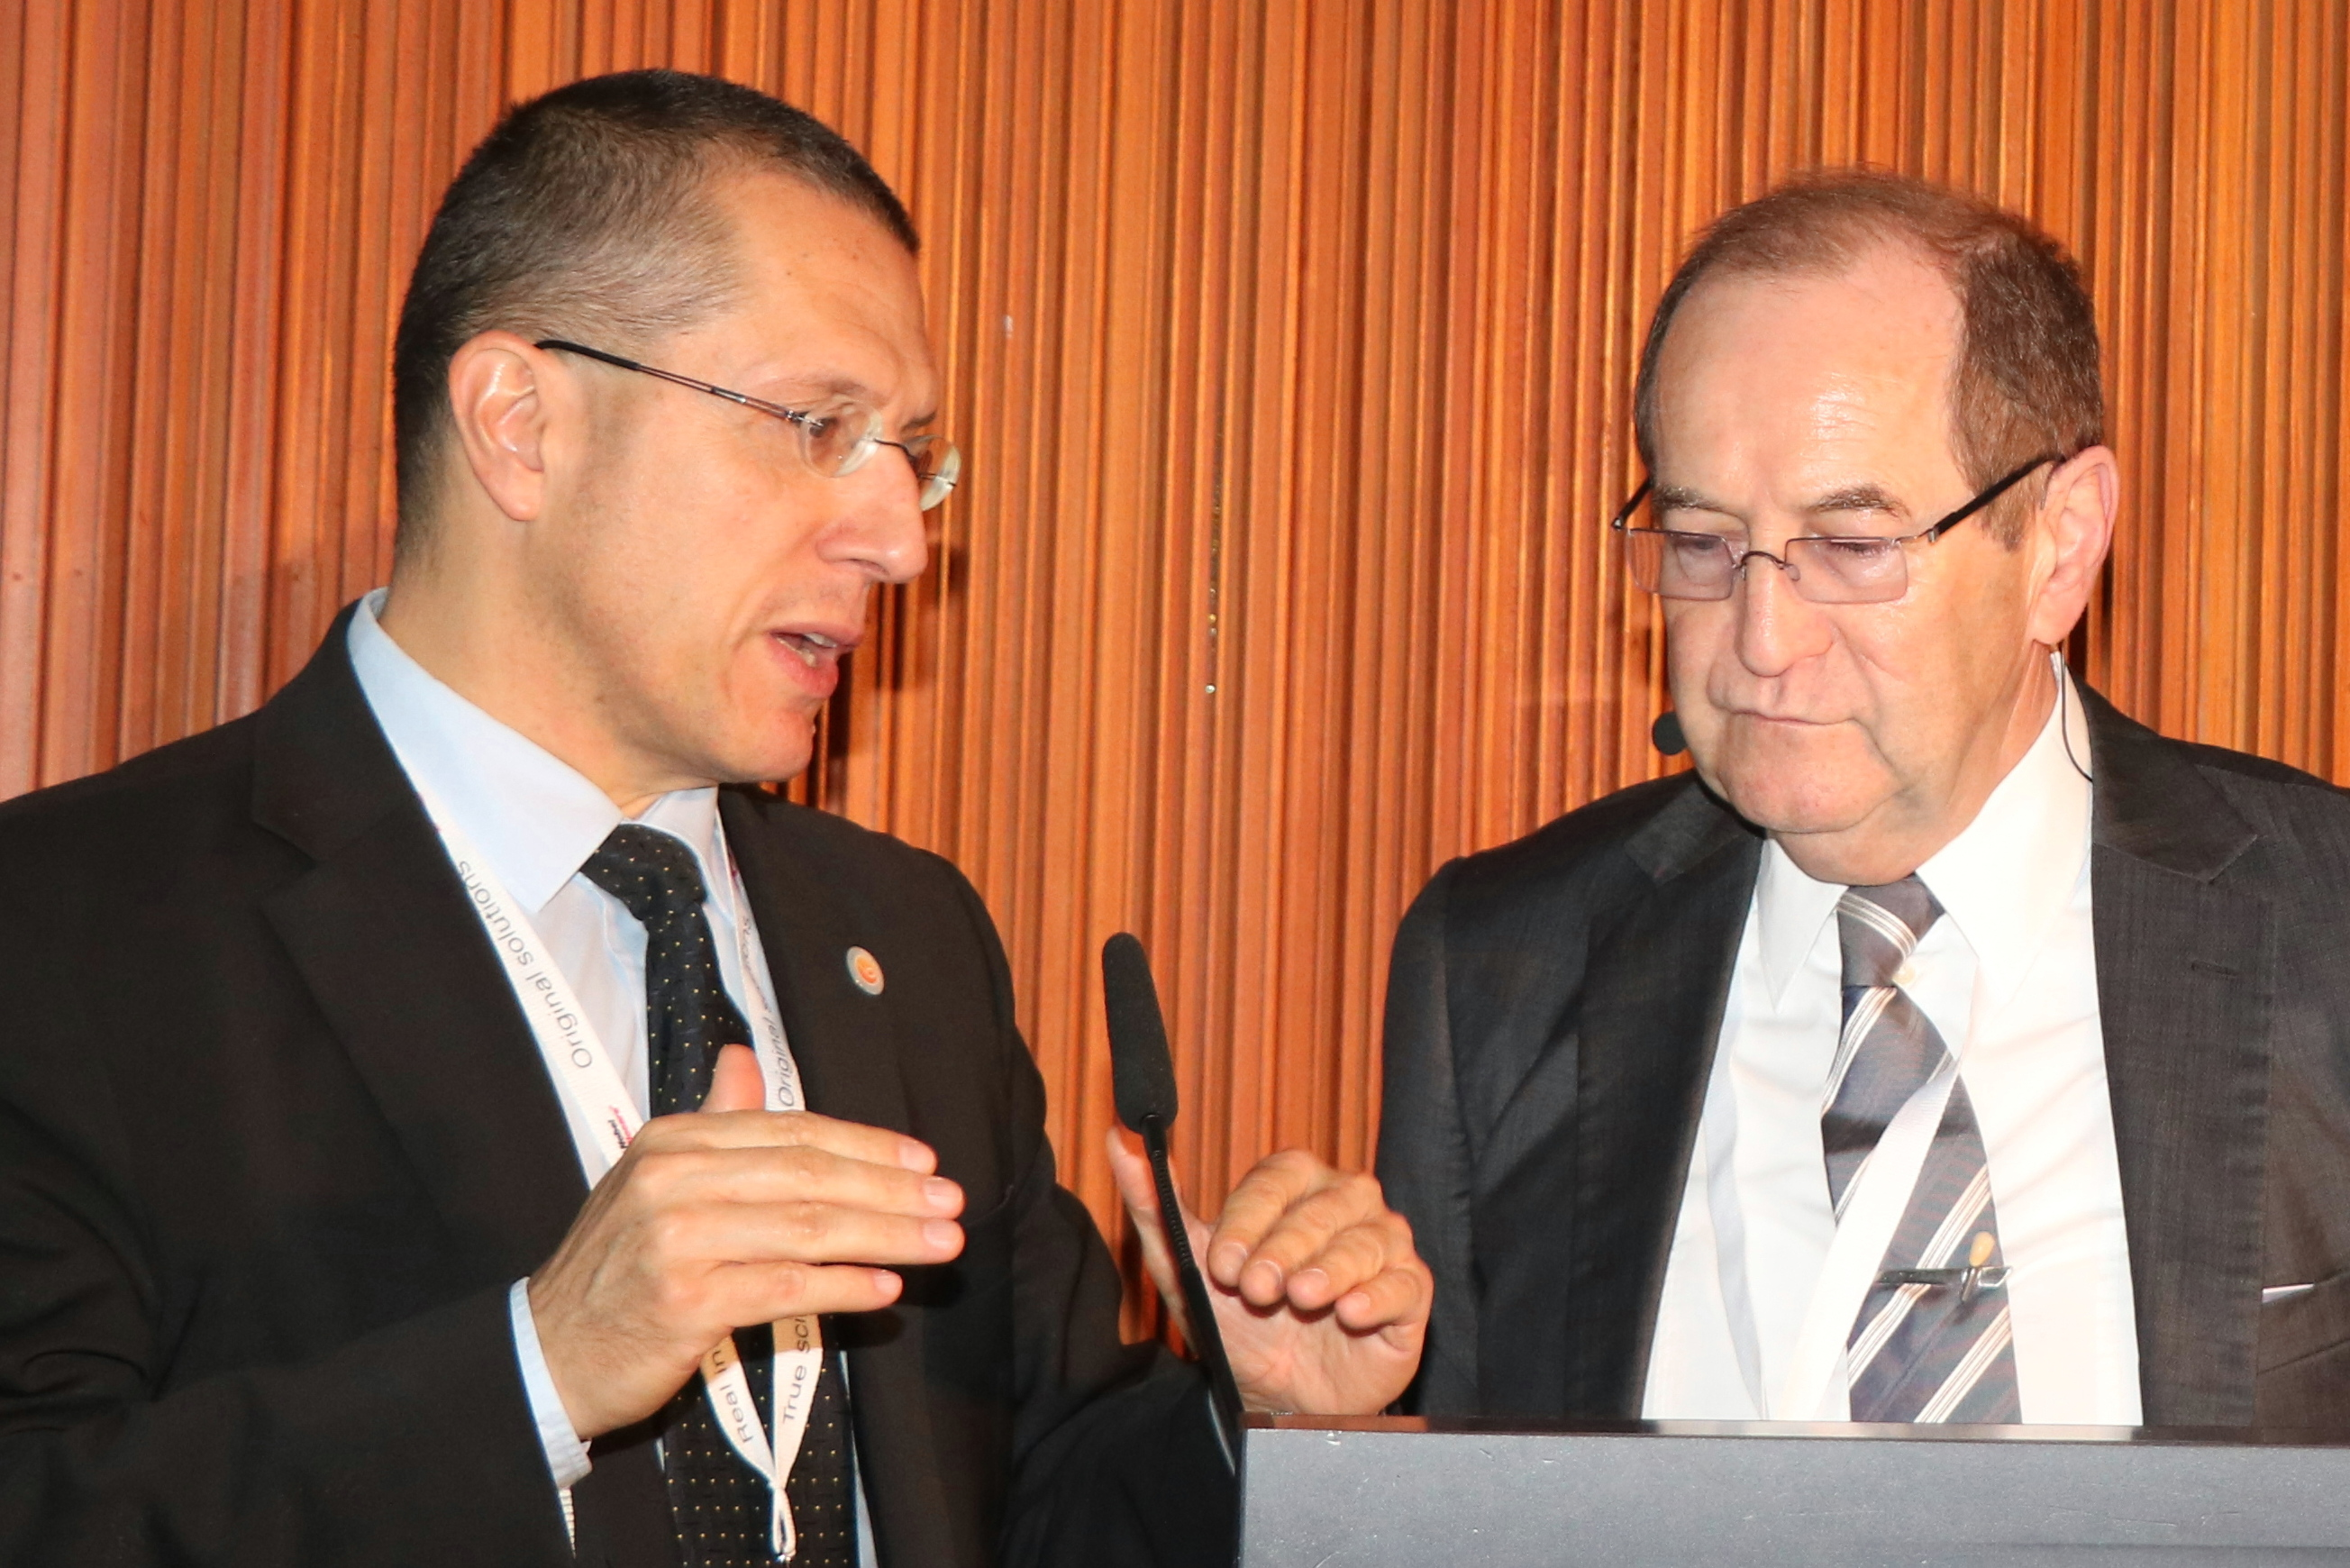 Dialogue with the EFP President: Professor Anton Sculean (left) and Dr Karl-Ludwig Ackermann